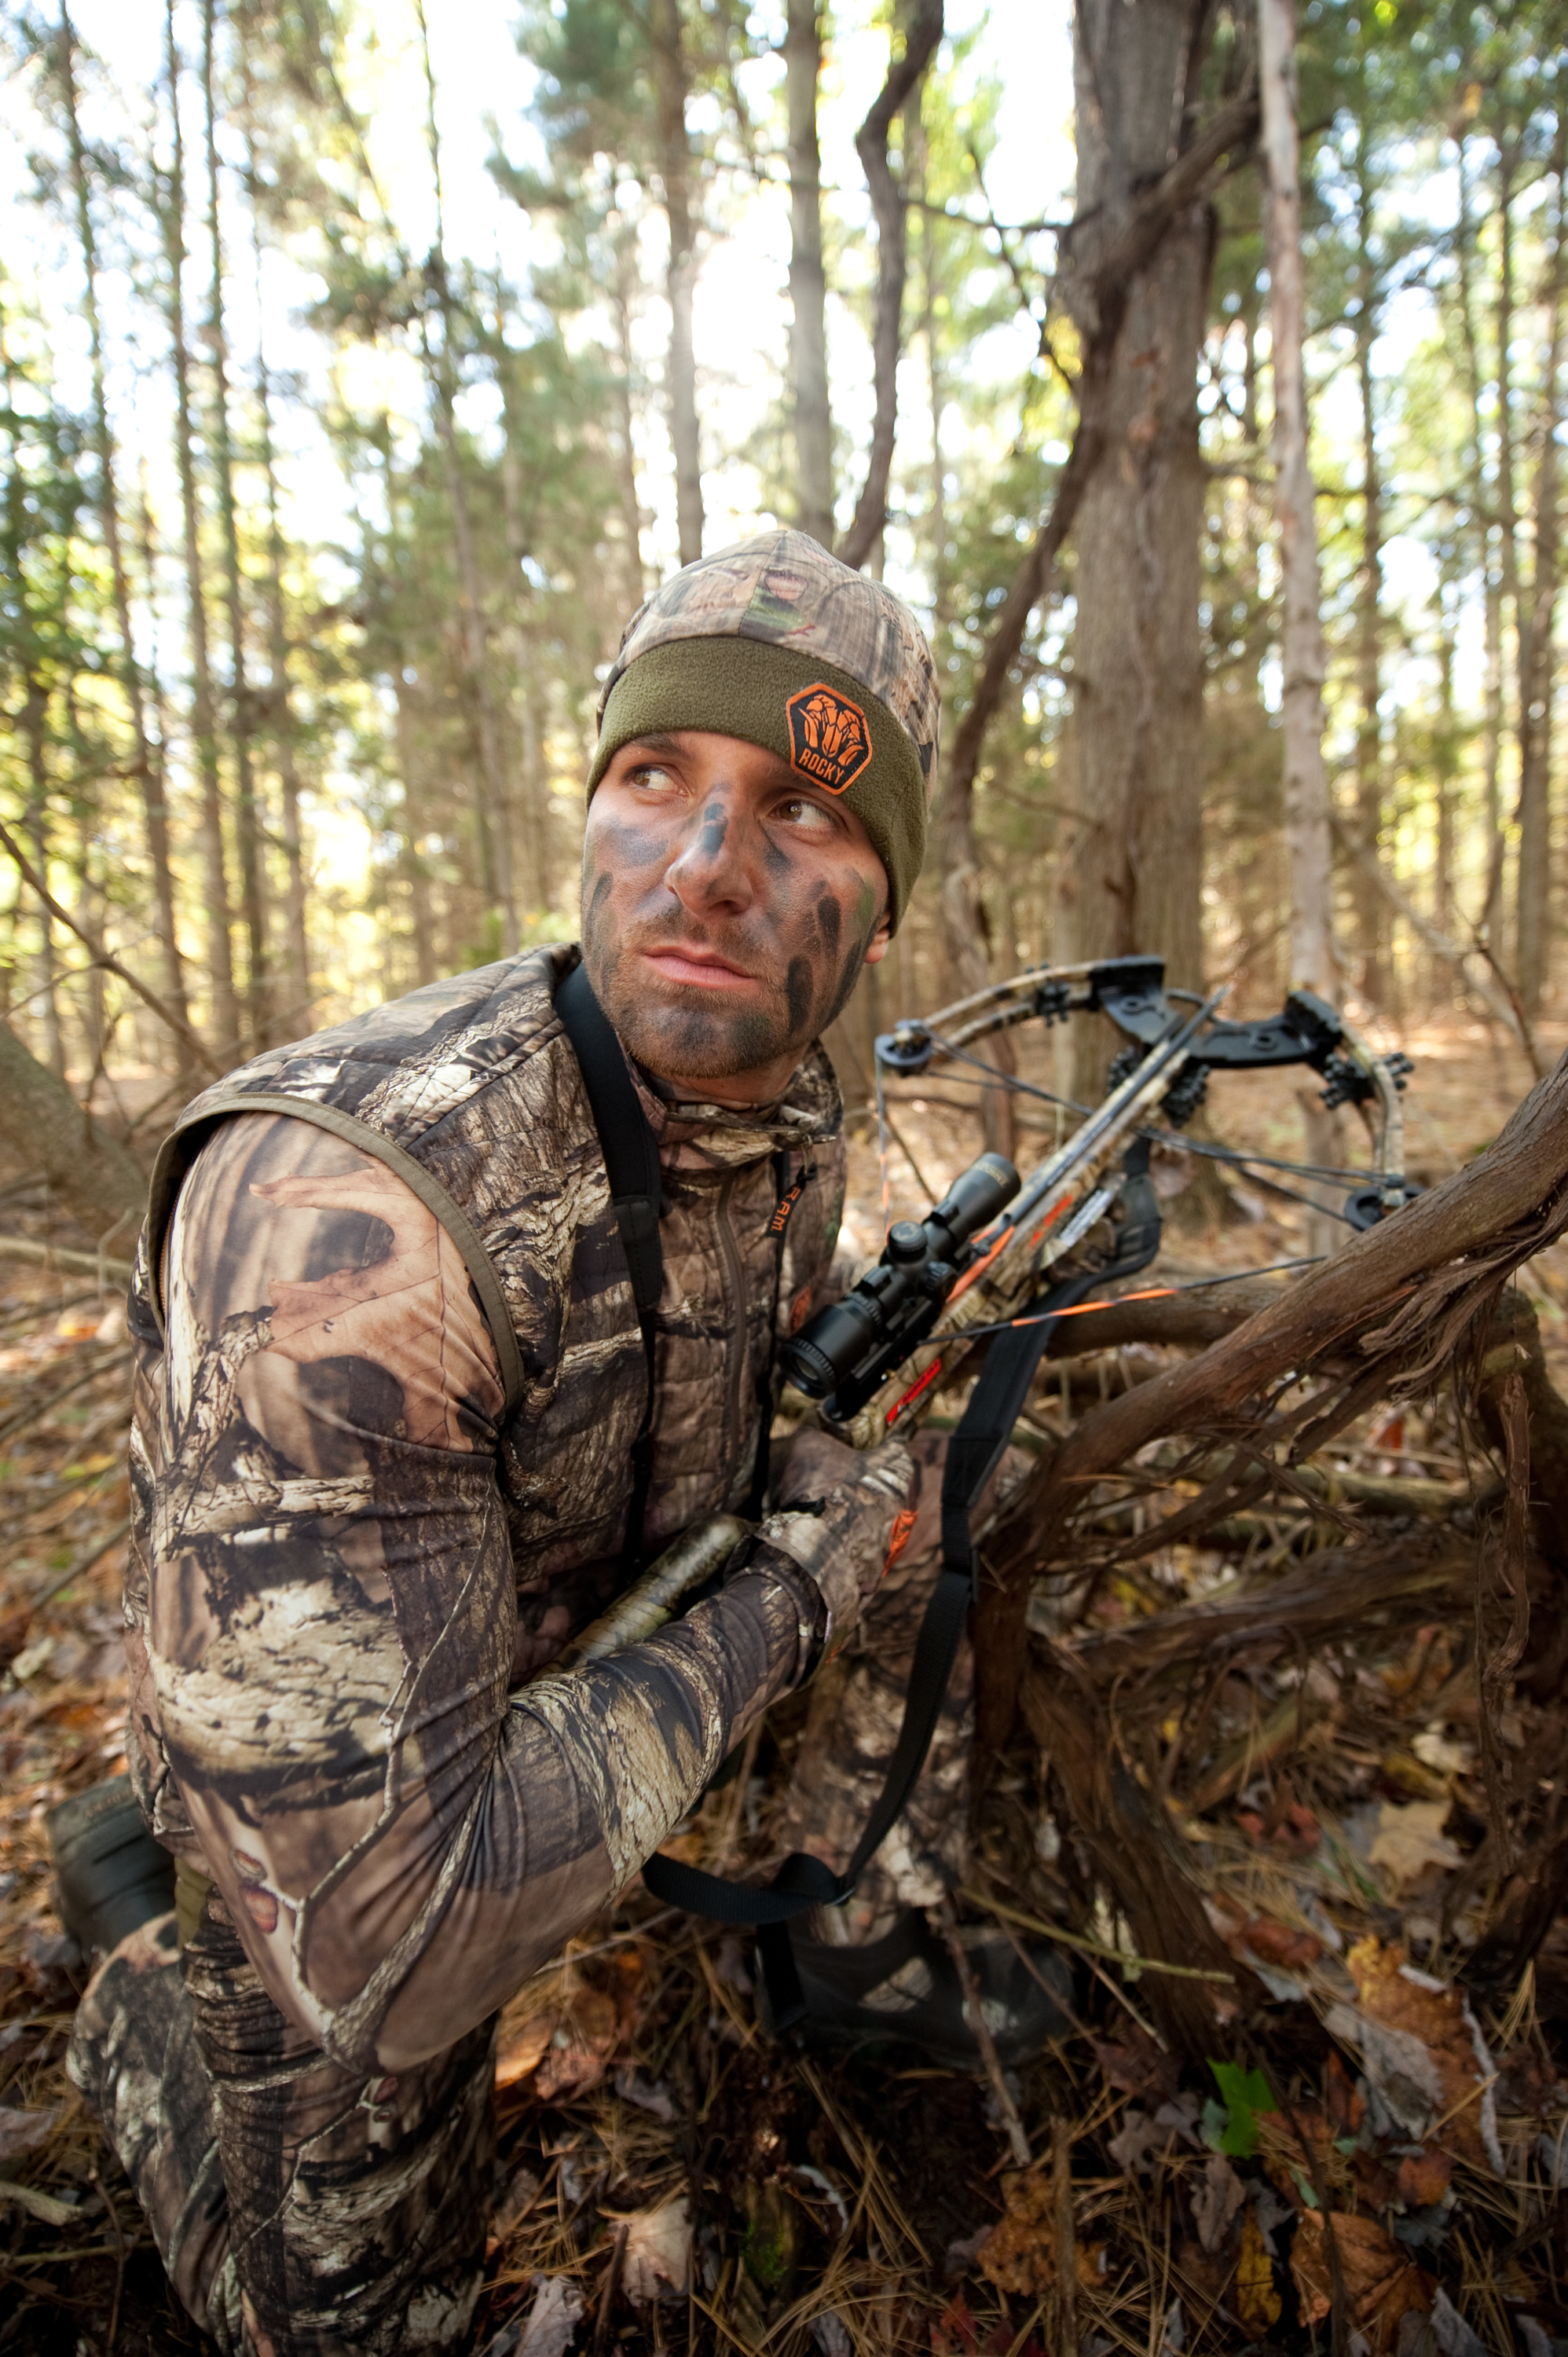 pro tips for deer hunting Deer hunting may be one of the hardest sports but, getting the right bow and knowing exactly what you need to do can make it manageable.